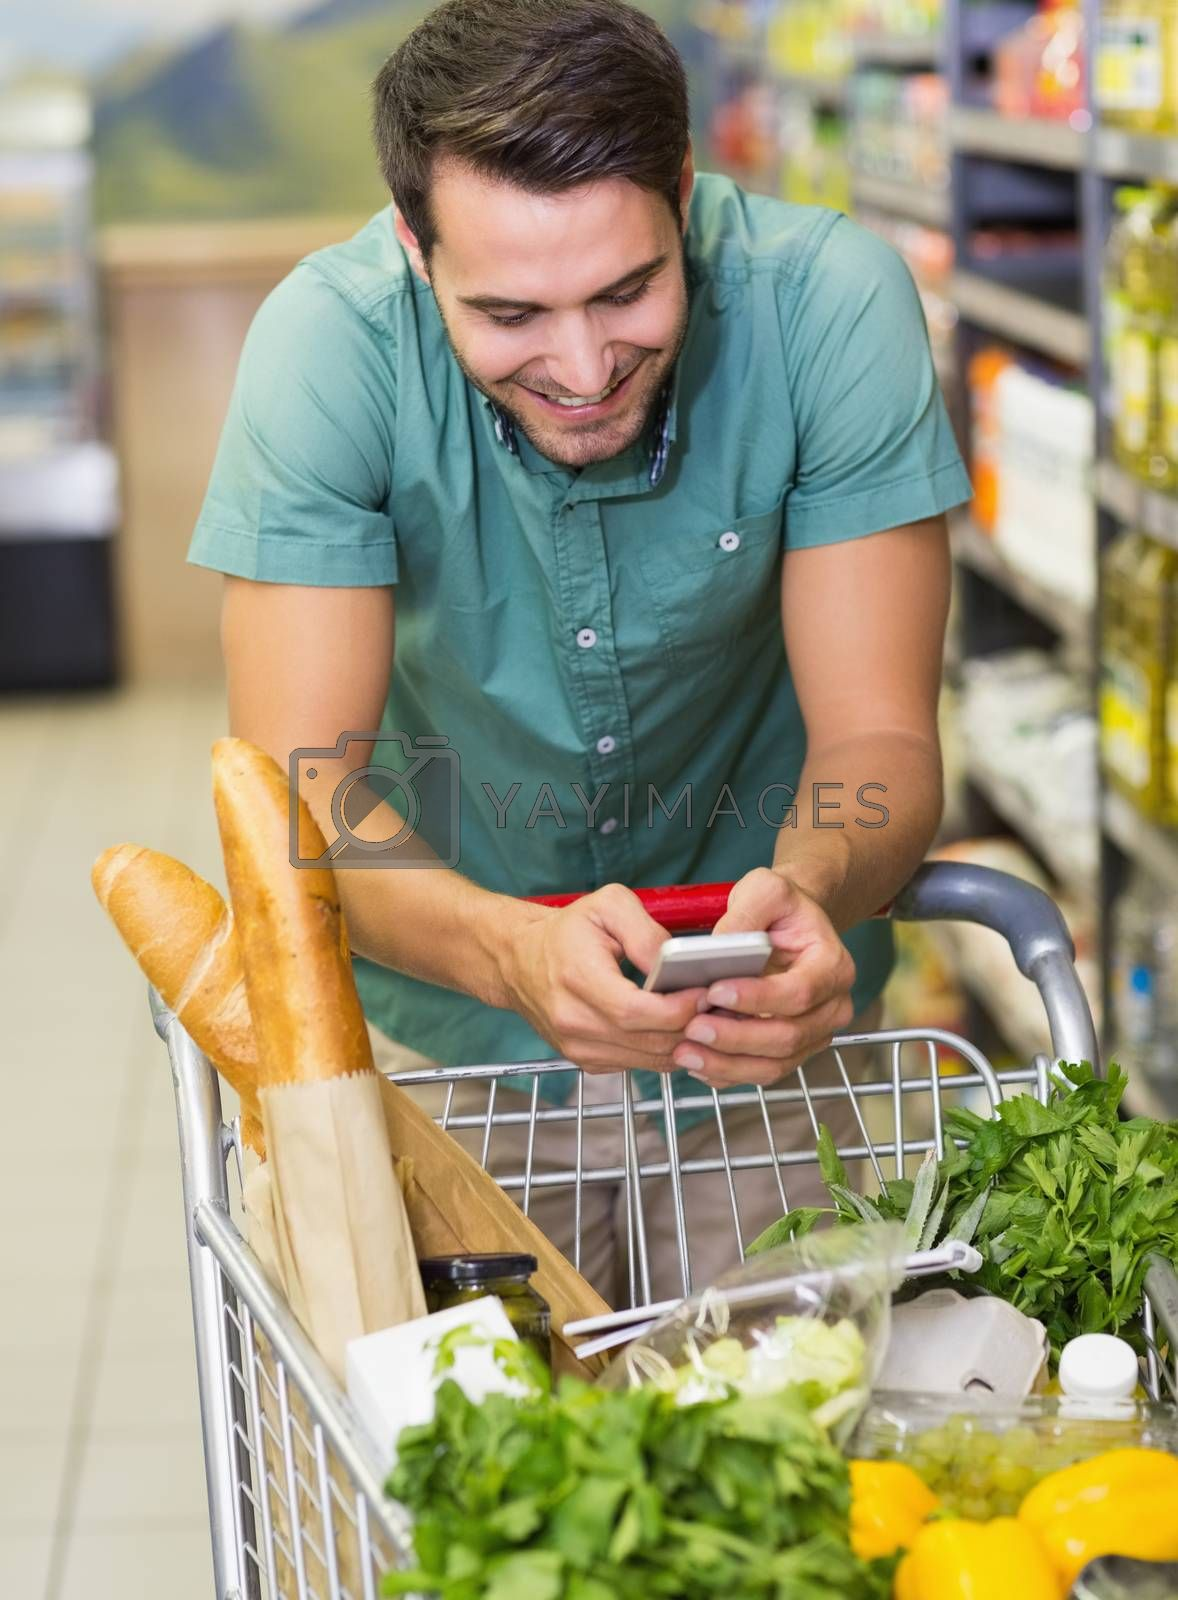 Royalty free image of Smiling man buy products and using his smaprtphone  by Wavebreakmedia